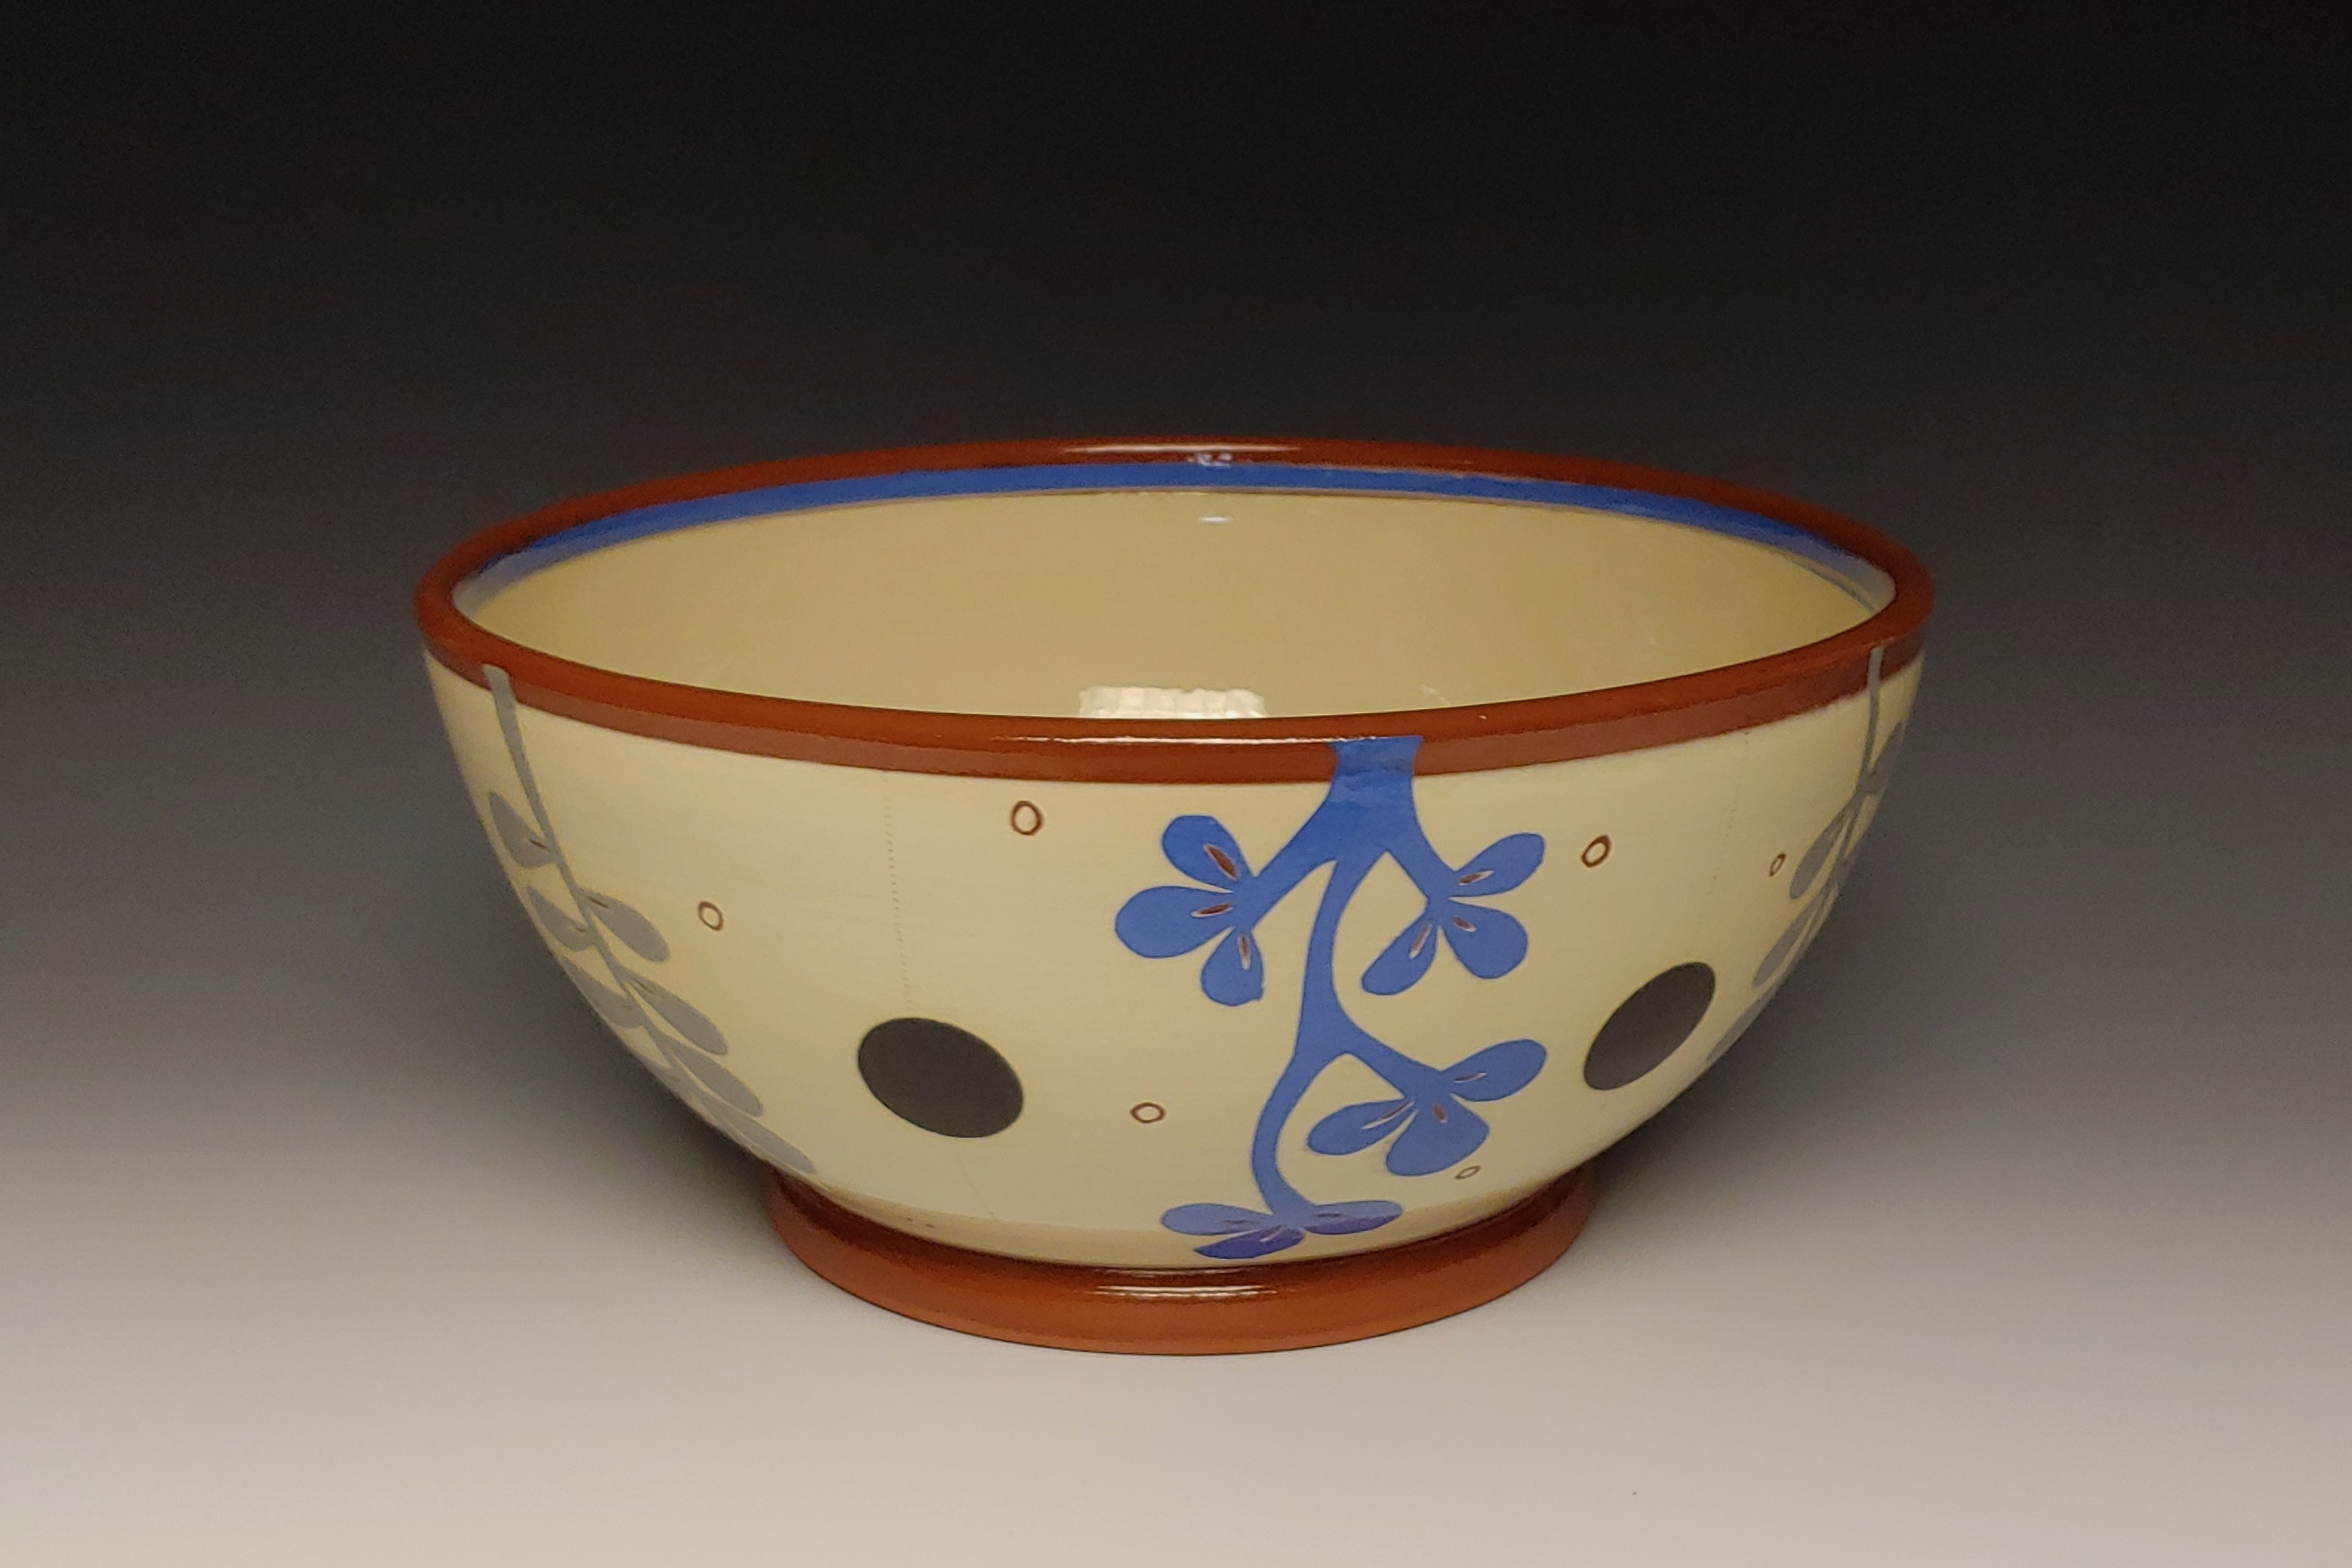 Medium Serving Bowl with Blue and Gray Leafy Cutouts Interiour Blue Band and Black Spots